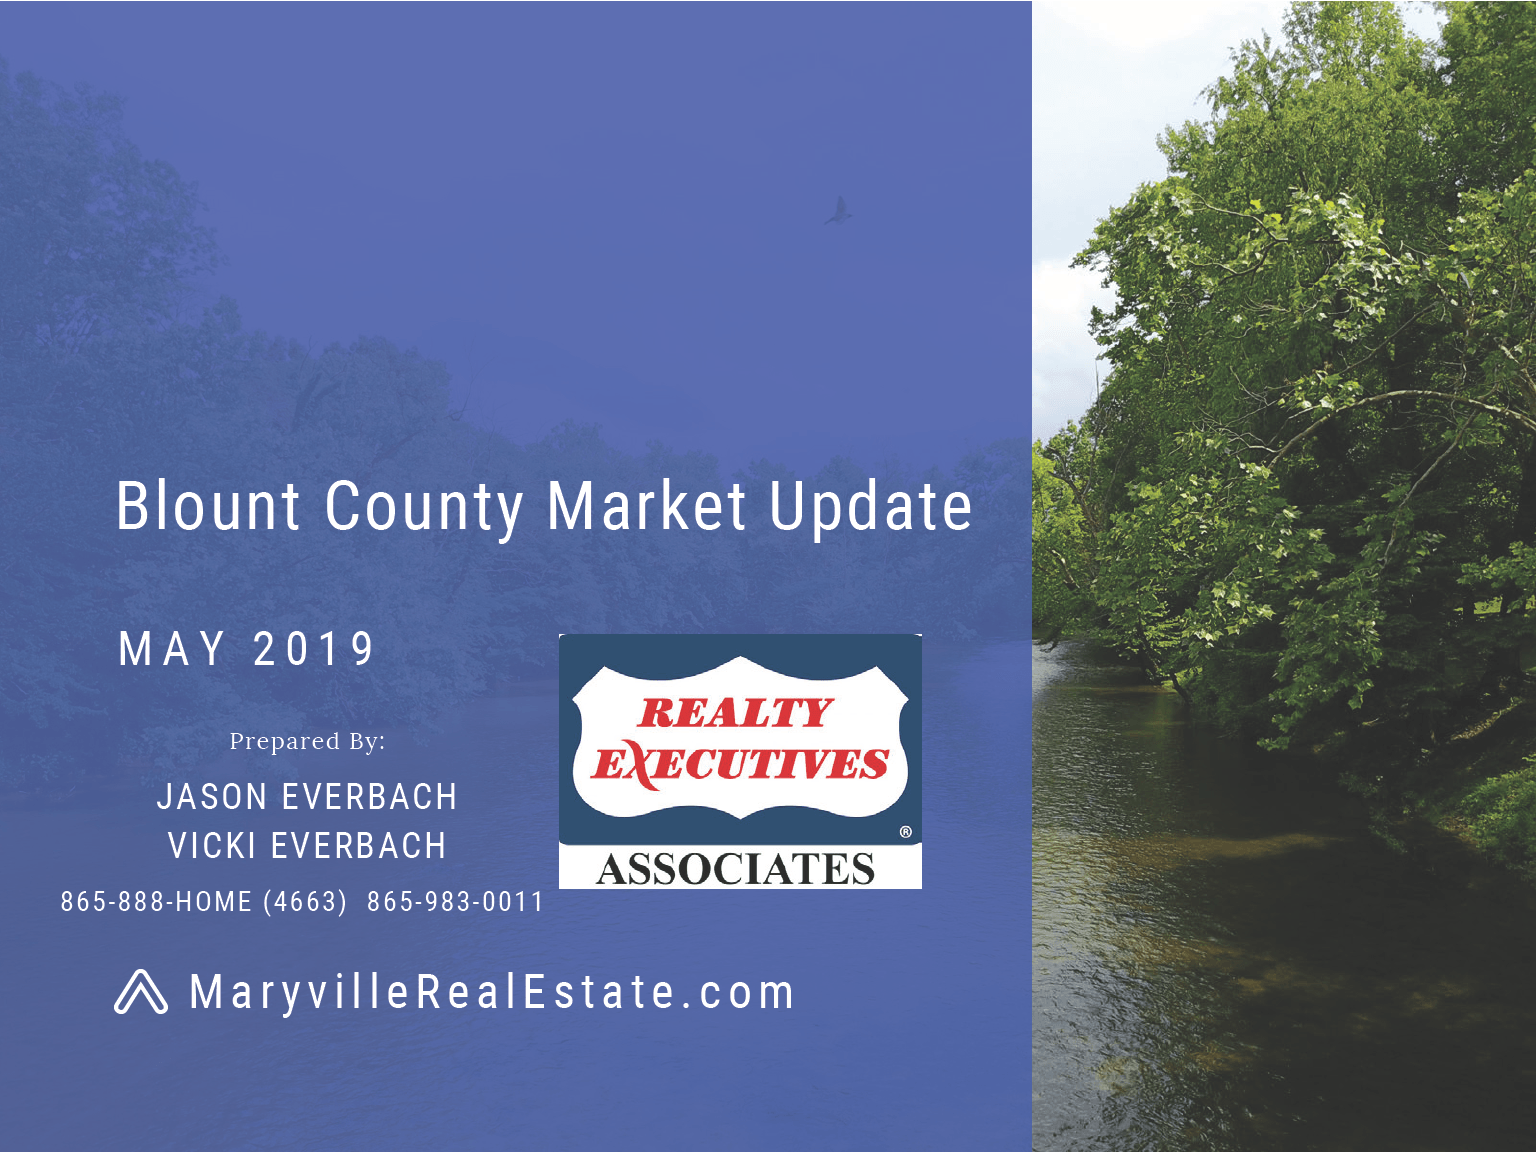 May 2019 Blount County Market Update